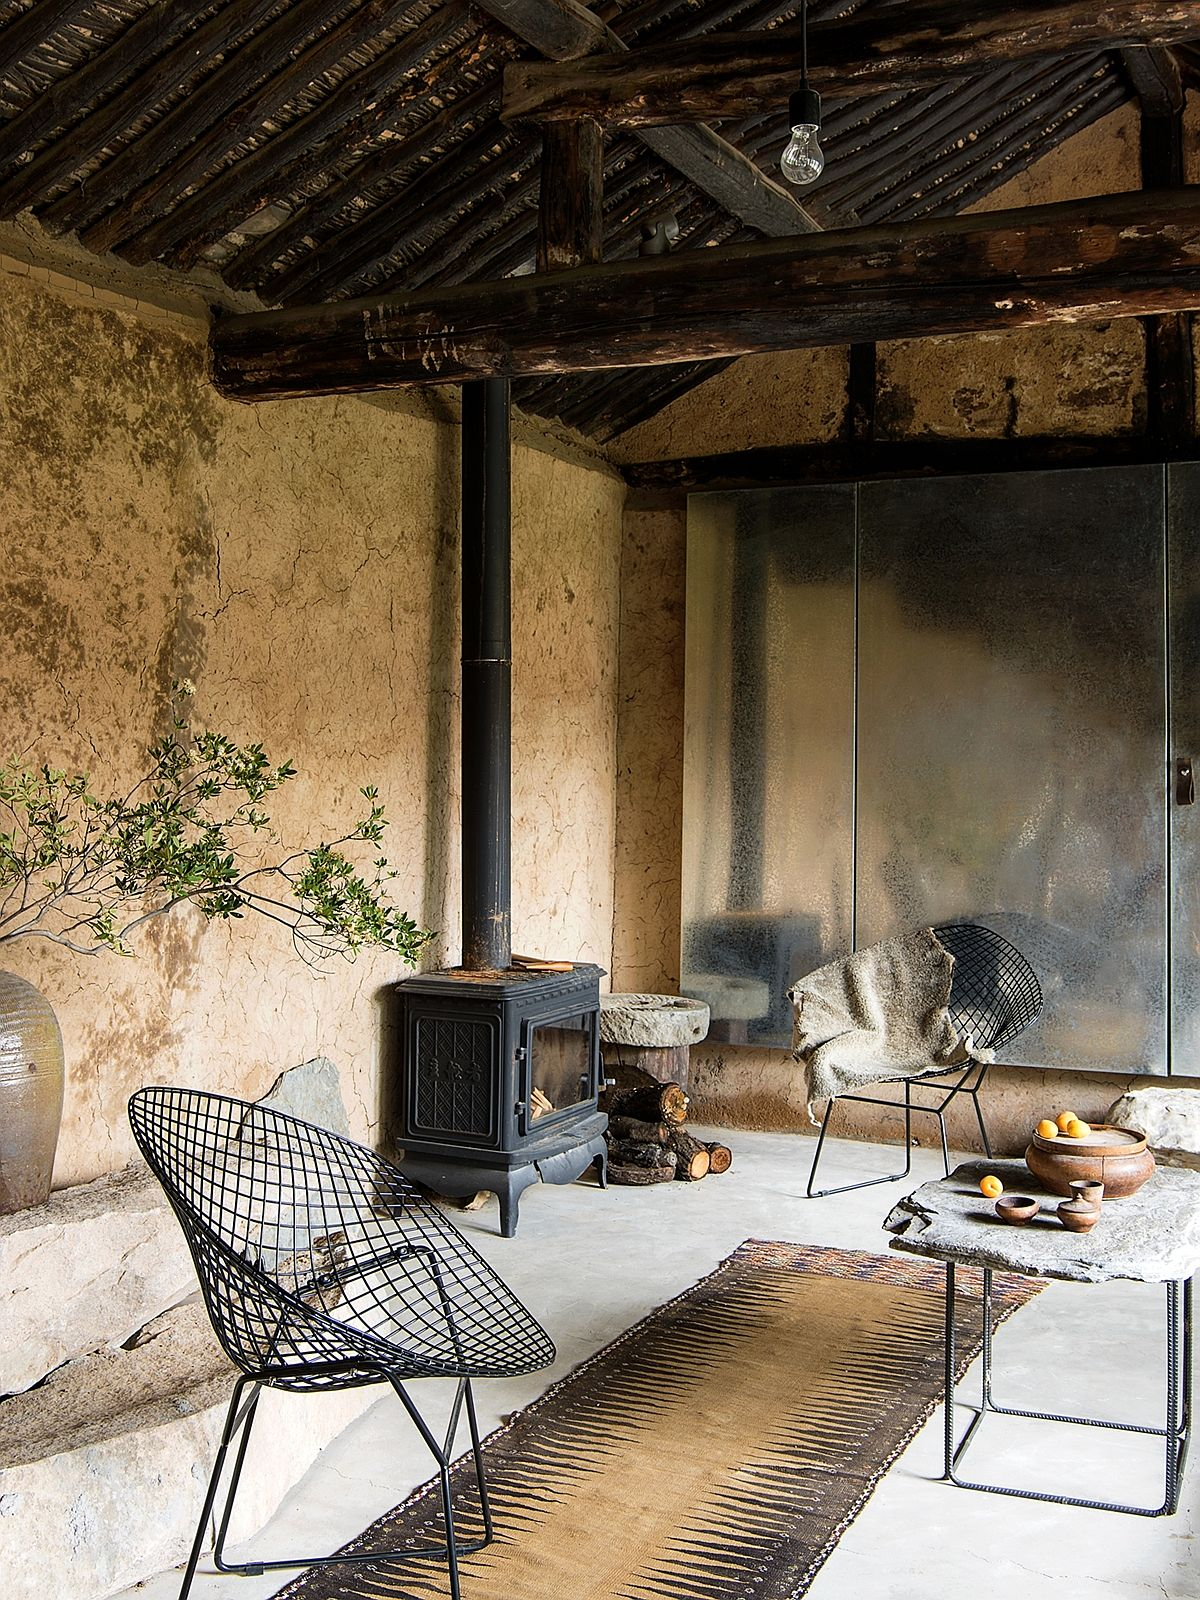 Rustic rural finishes and metallic surfaces give the interior a low-maintenance design approach